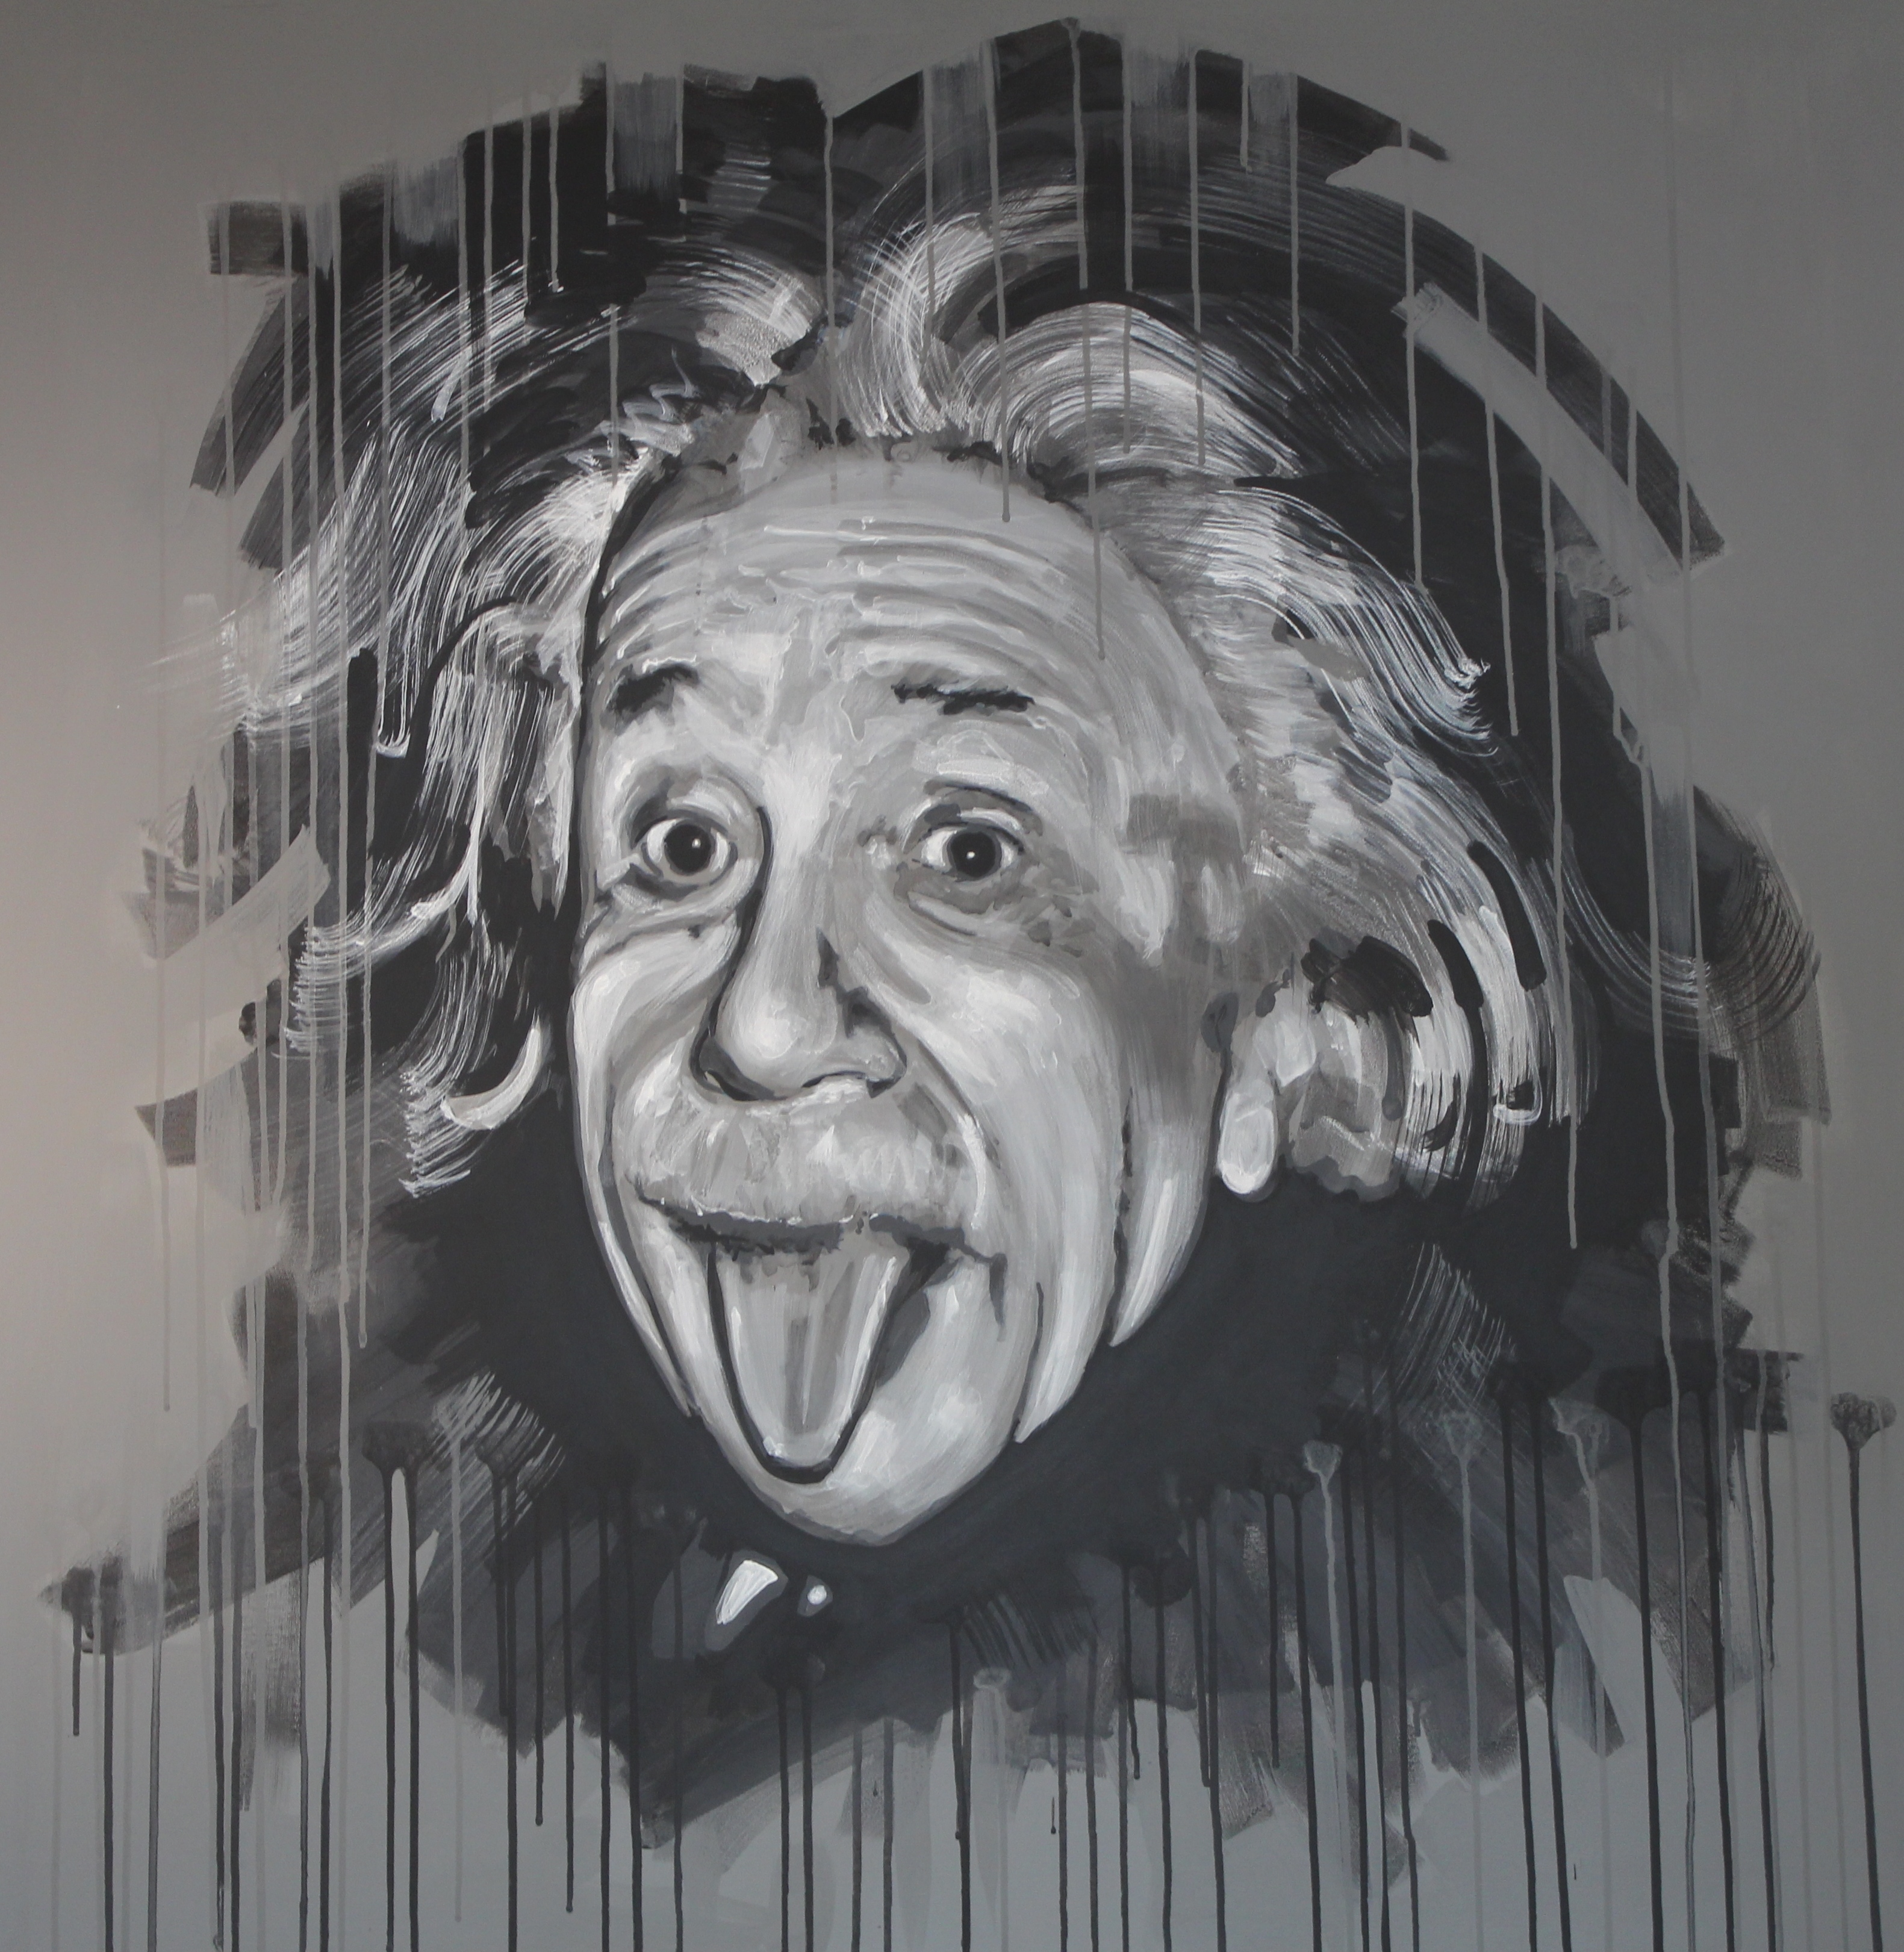 albert einstein acrylic 112x112 sold